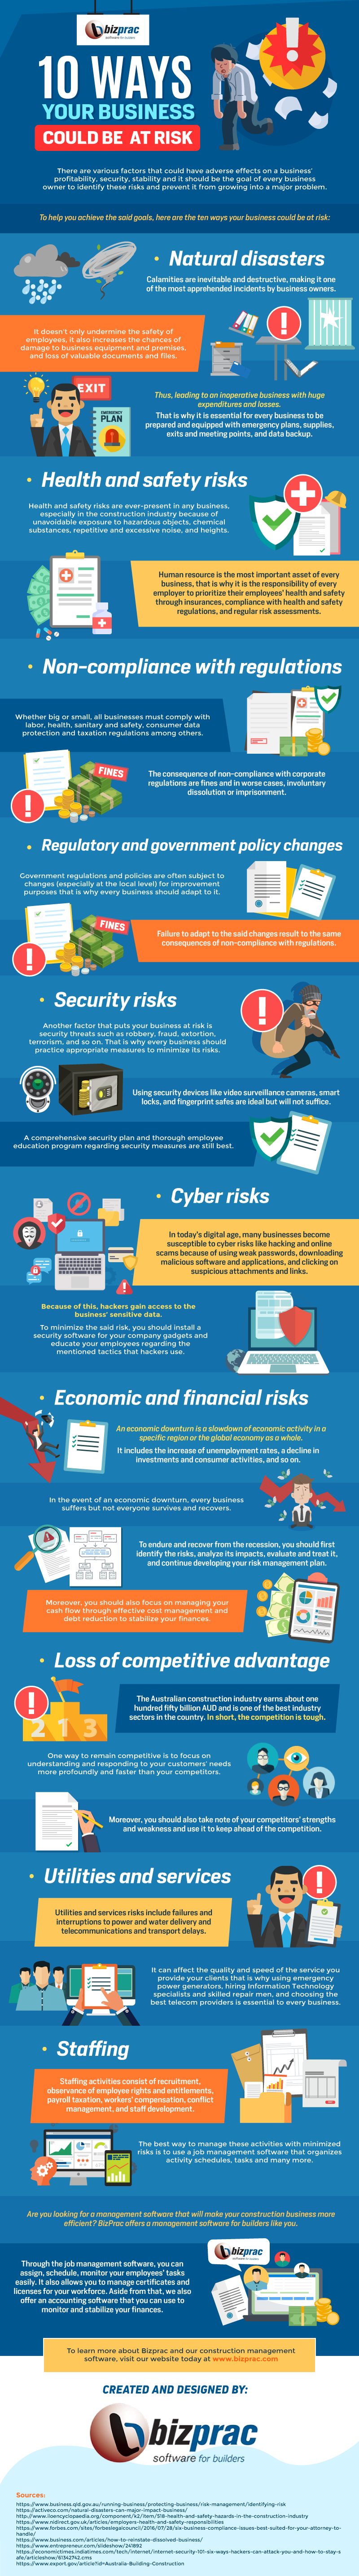 Did You Know Your Business Might Be at Risk? [Infographic]